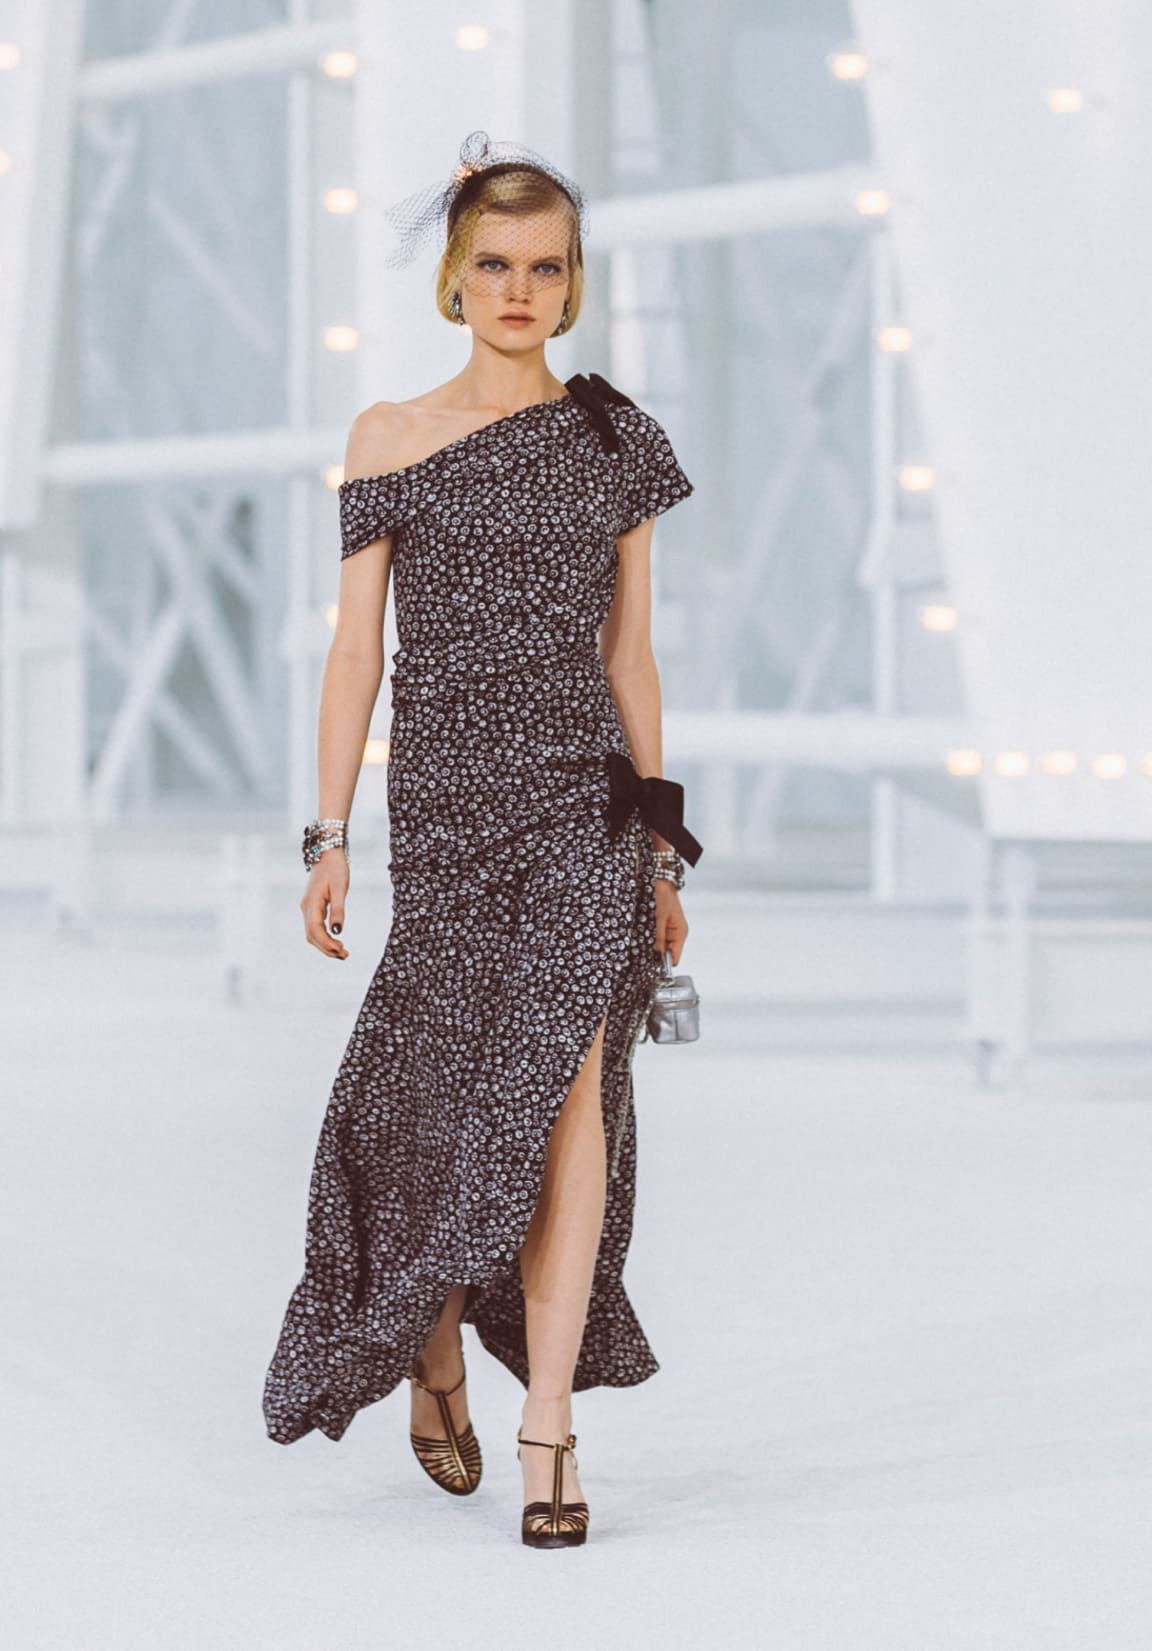 Image 1 - Look 6